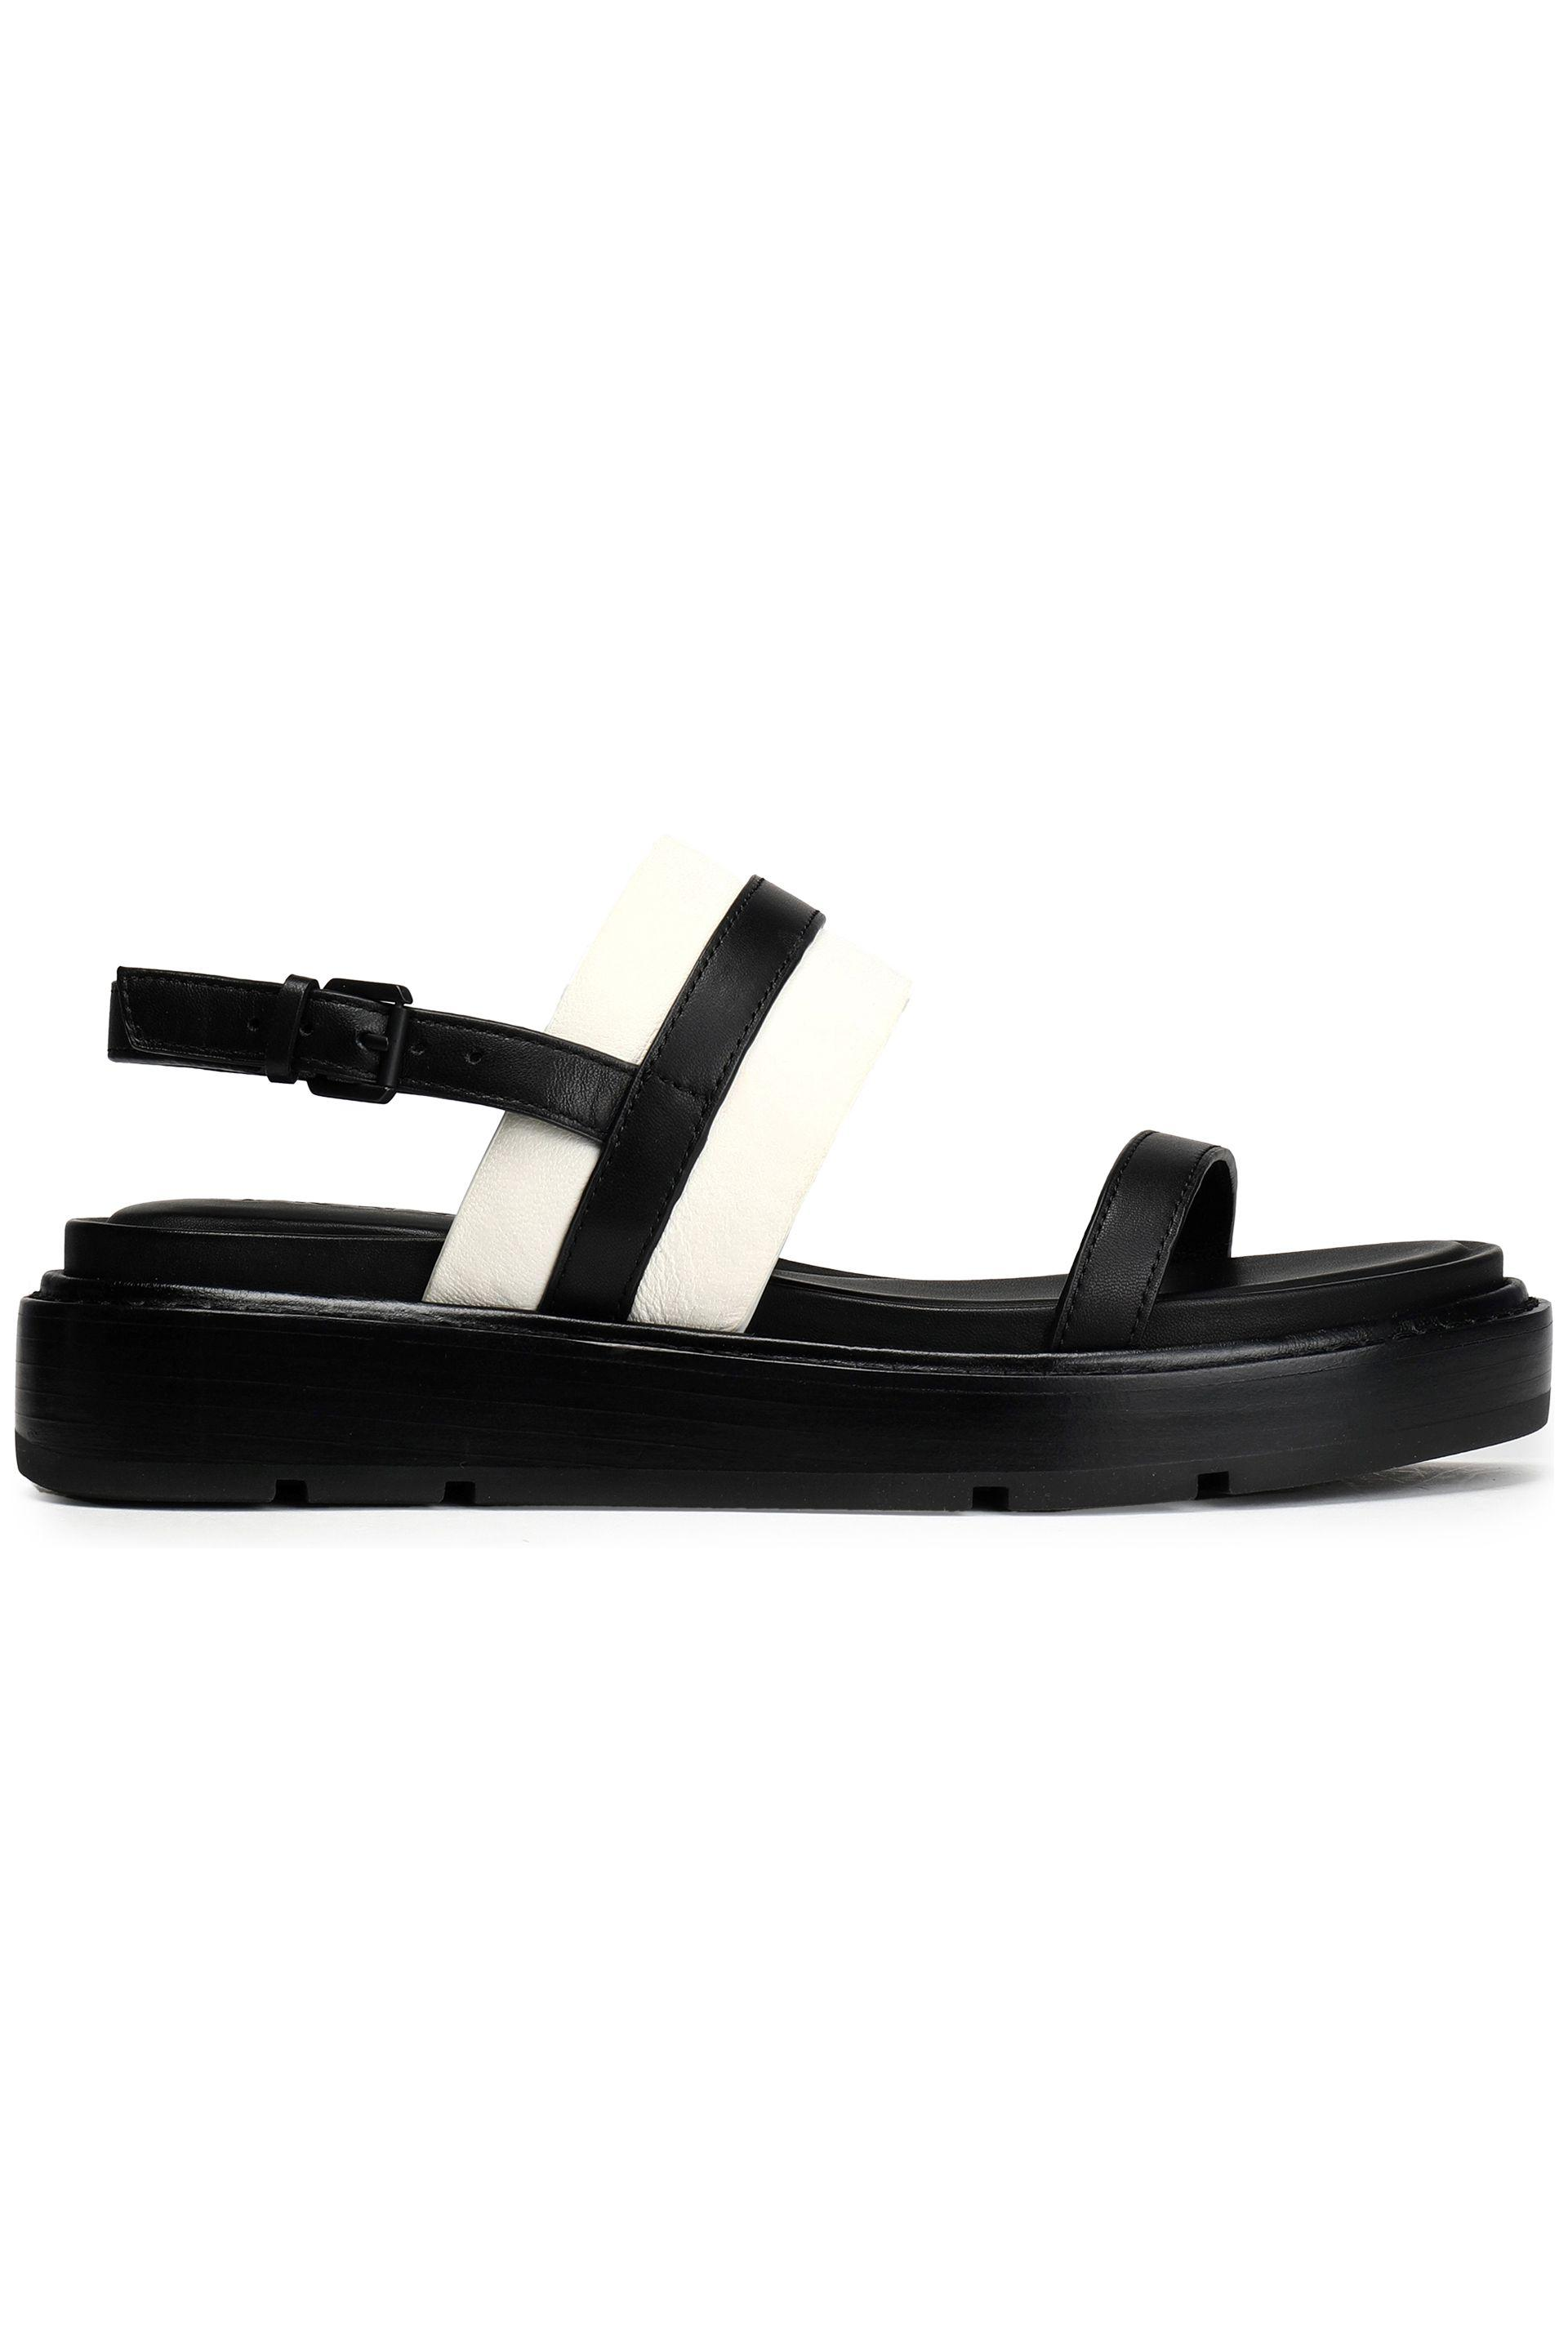 233de1af726d Dkny Two-tone Leather Sandals in Black - Lyst